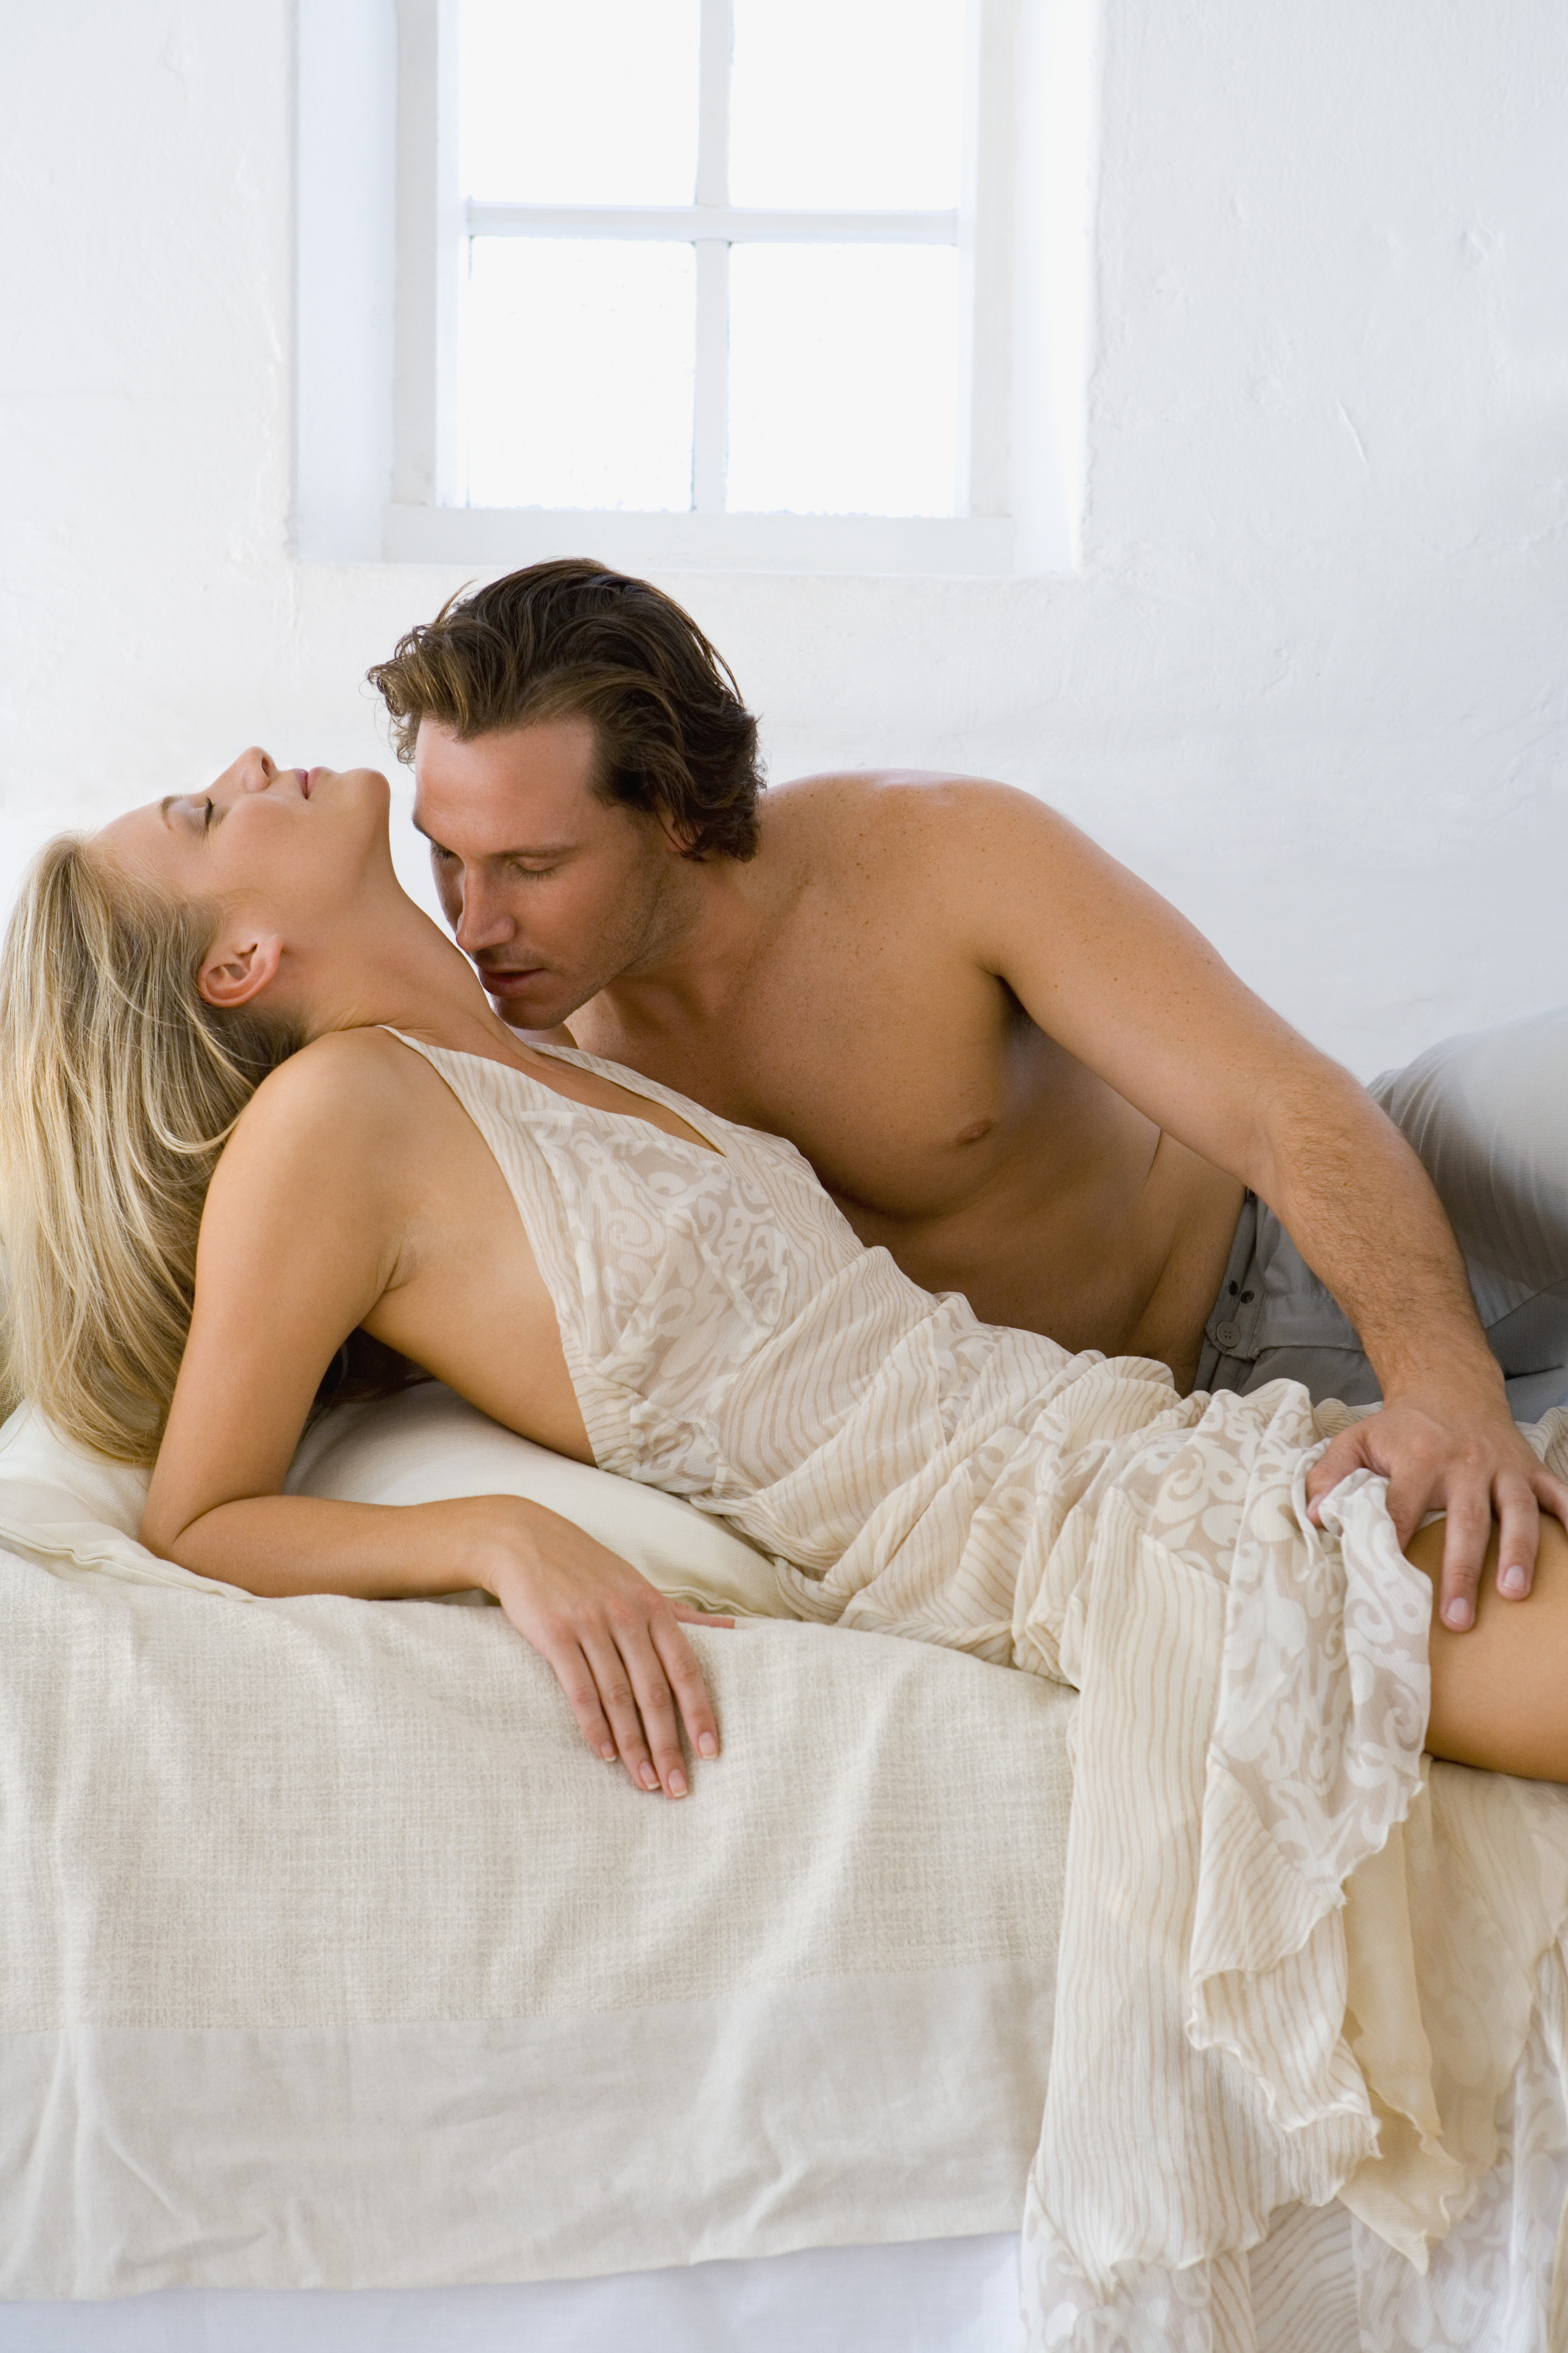 Men can have multiple orgasms: The little-known - Salon